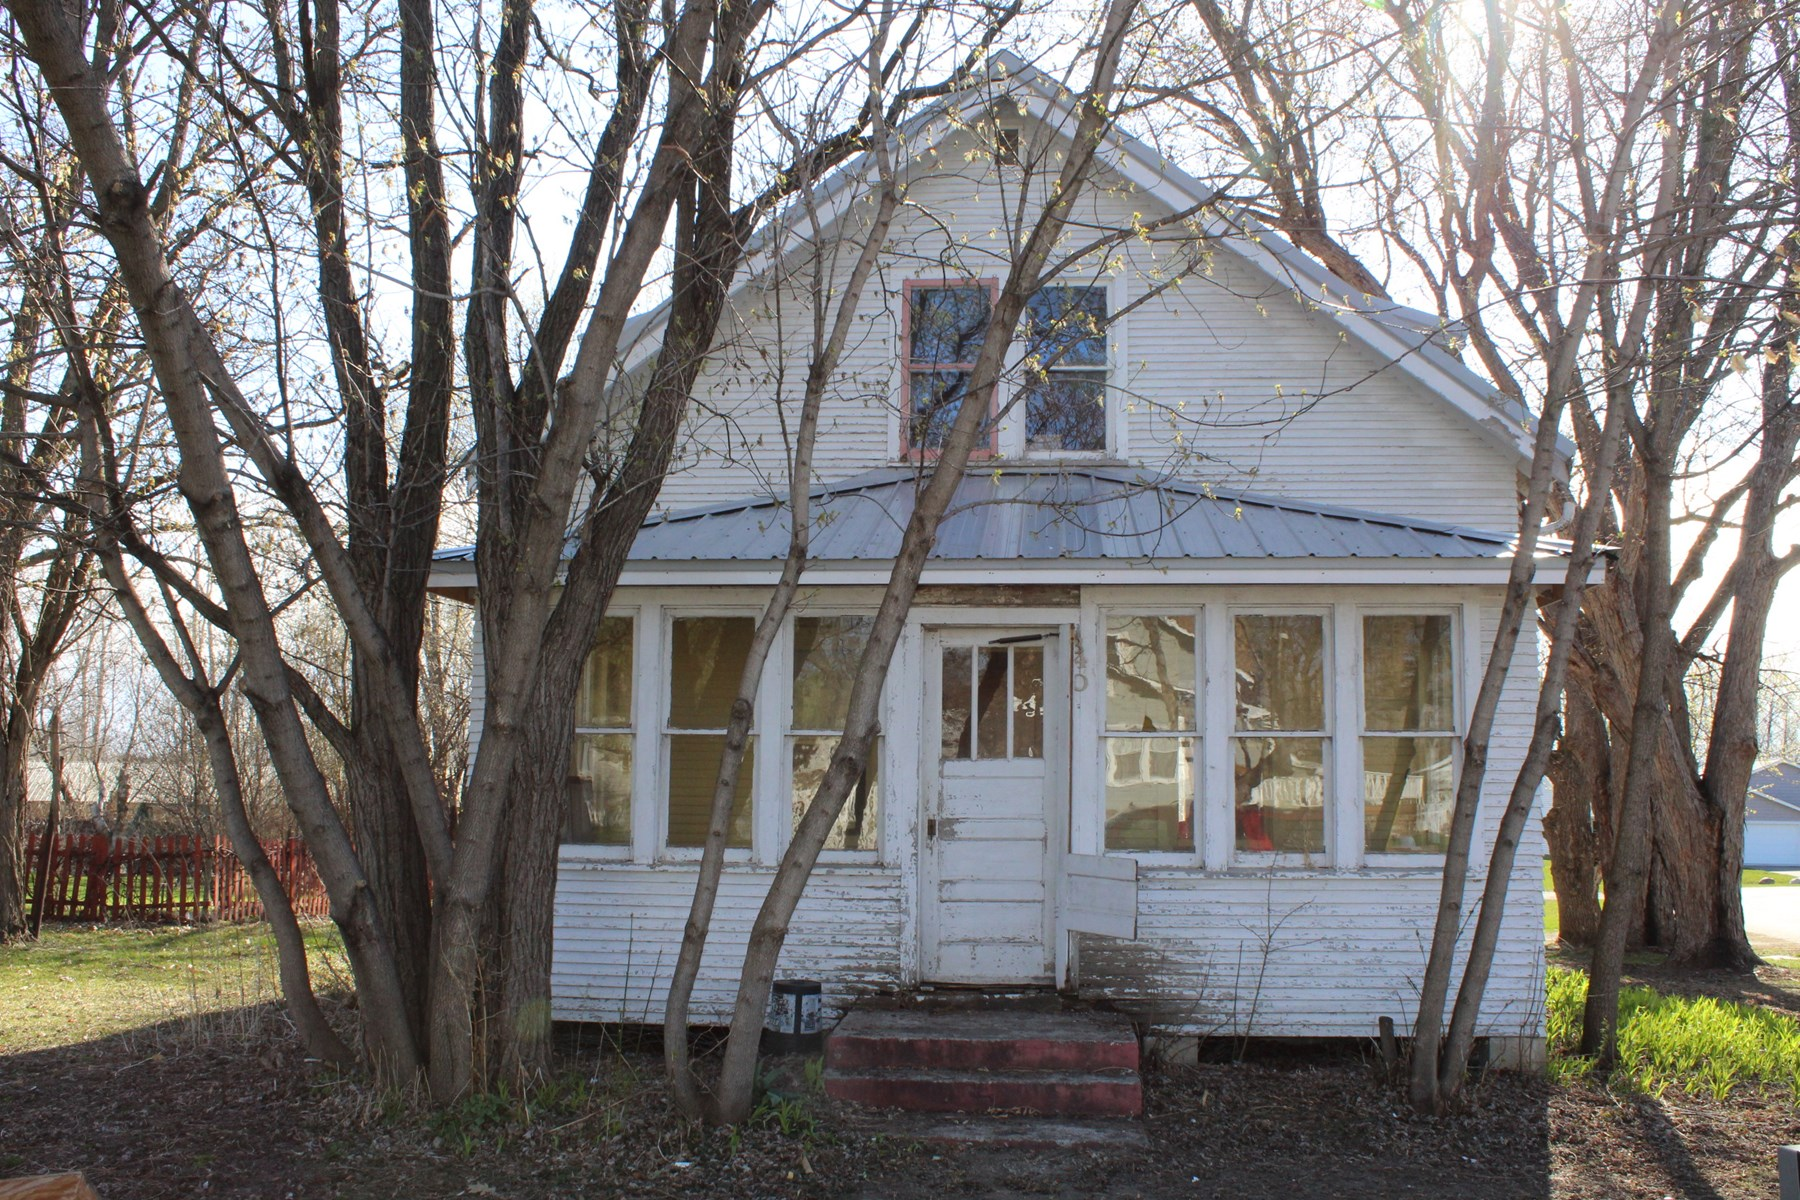 3BR/1BA Home for Sale in Pease